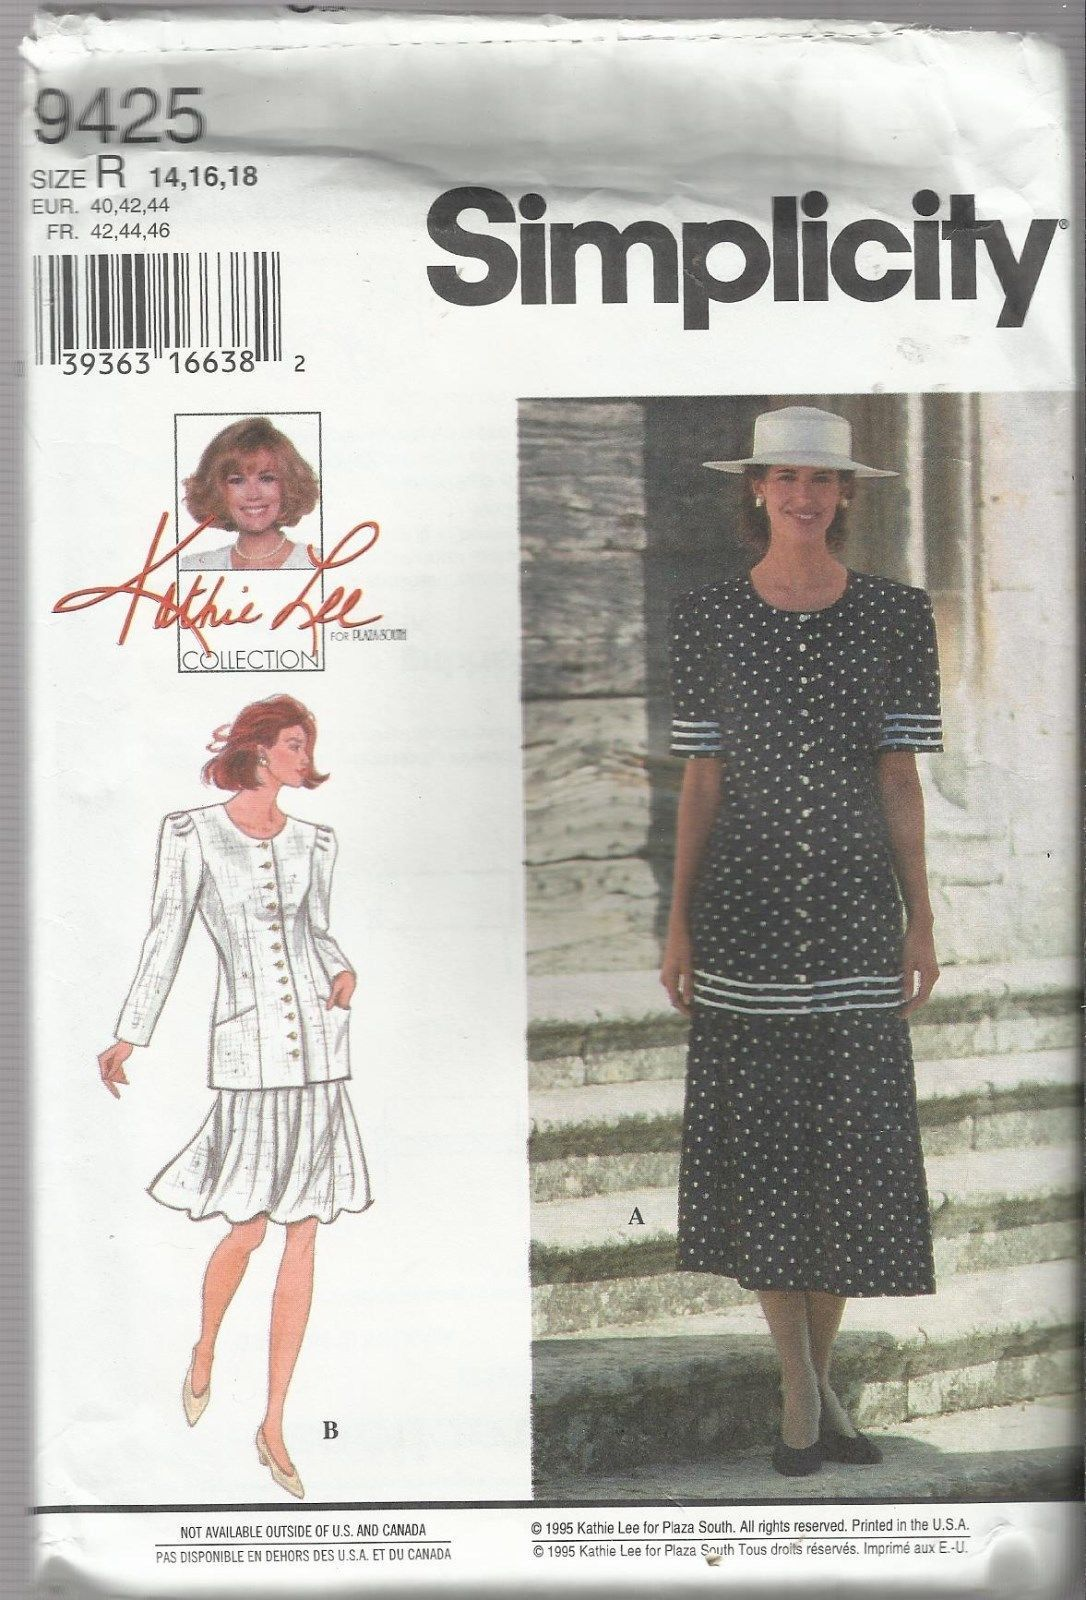 Simplicity 9425 Sewing Pattern: 1 listing